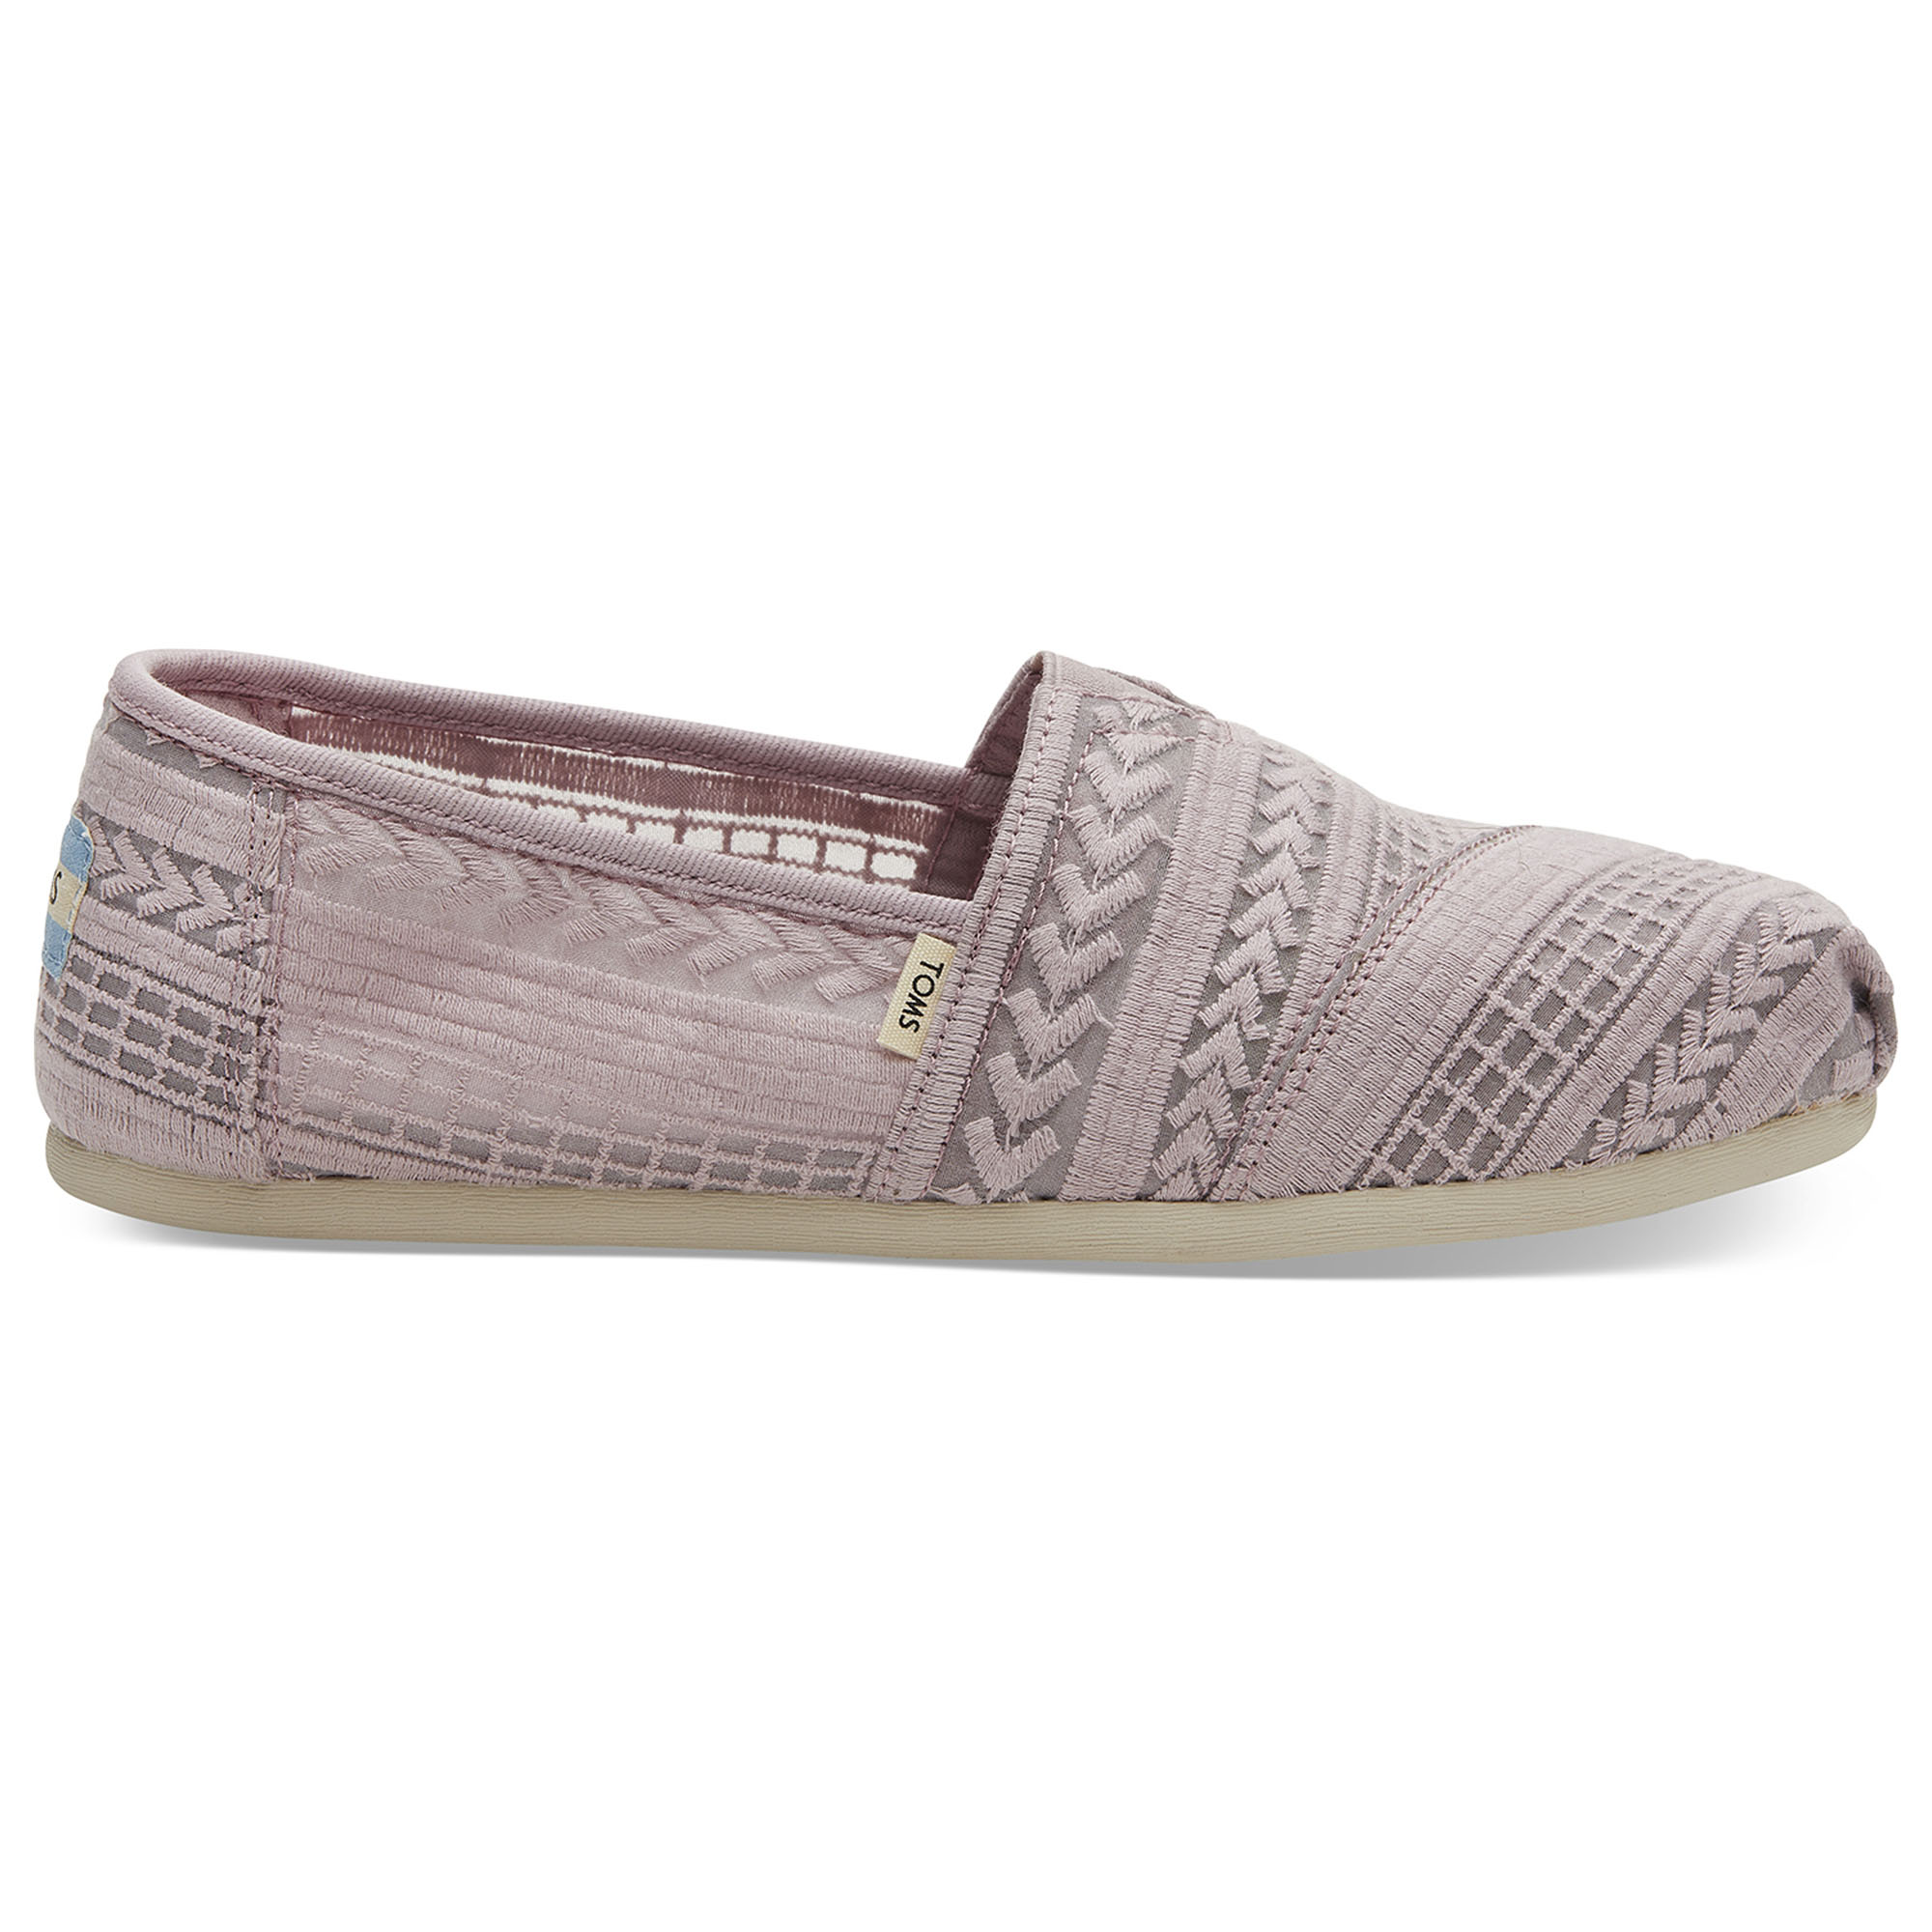 Womens Casual Slip On Sneakers